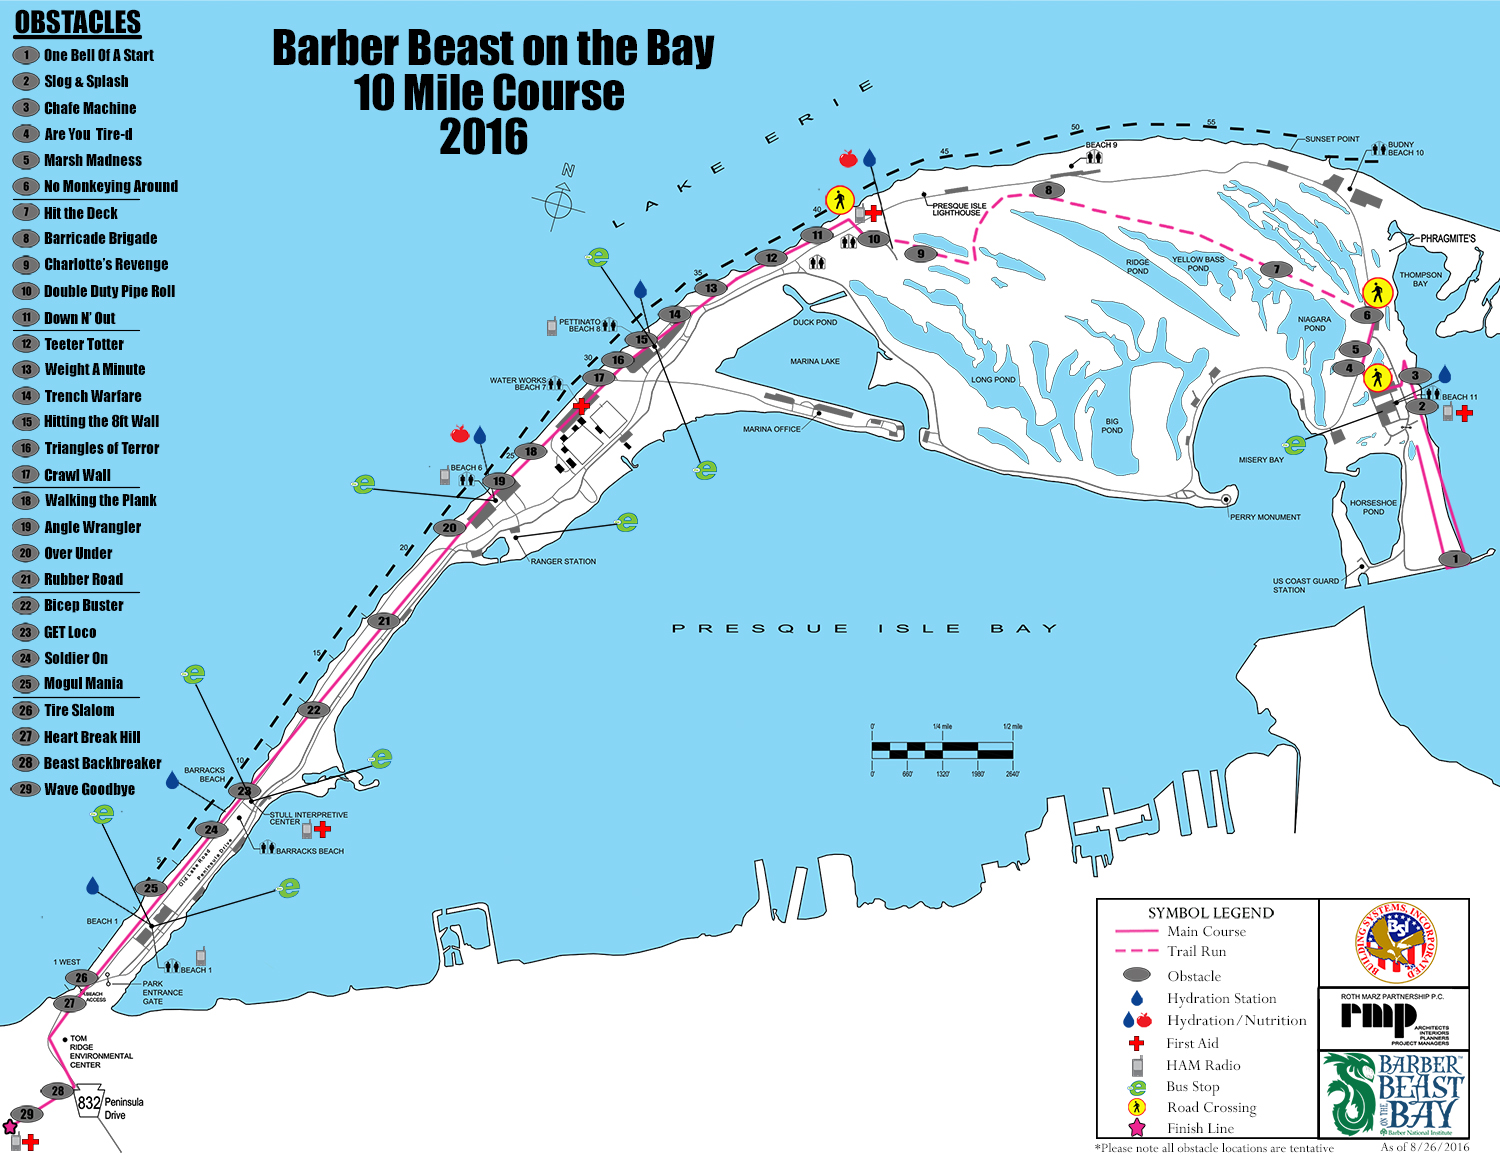 2016 Barber Beast on the Bay 10 Mile Course Map